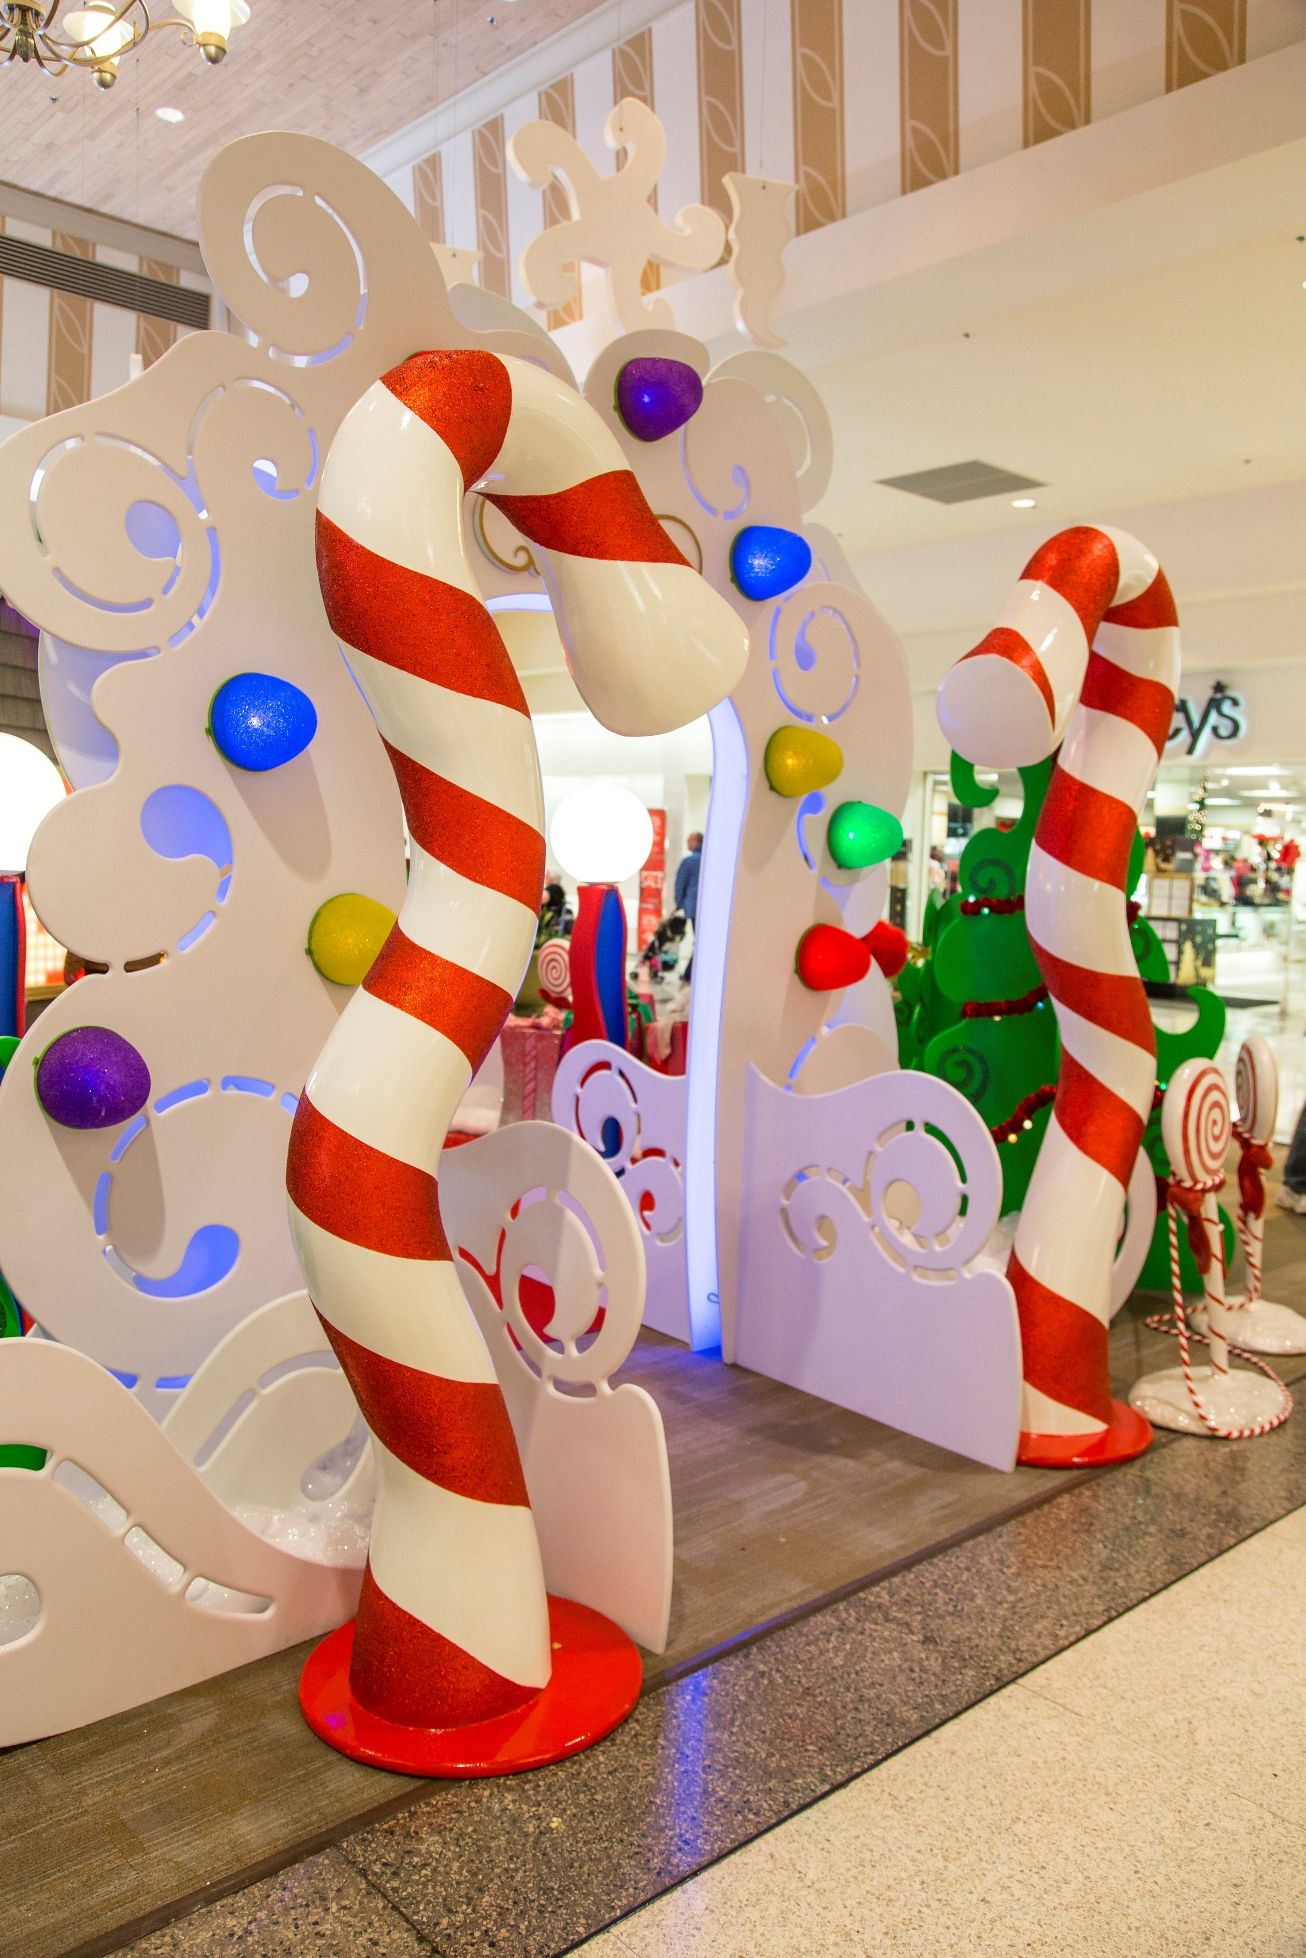 Large candy cane ornaments - Larger Than Life Wriggled Candy Canes And Peppermint Lollipops Cheerfully Round Out The Sugary